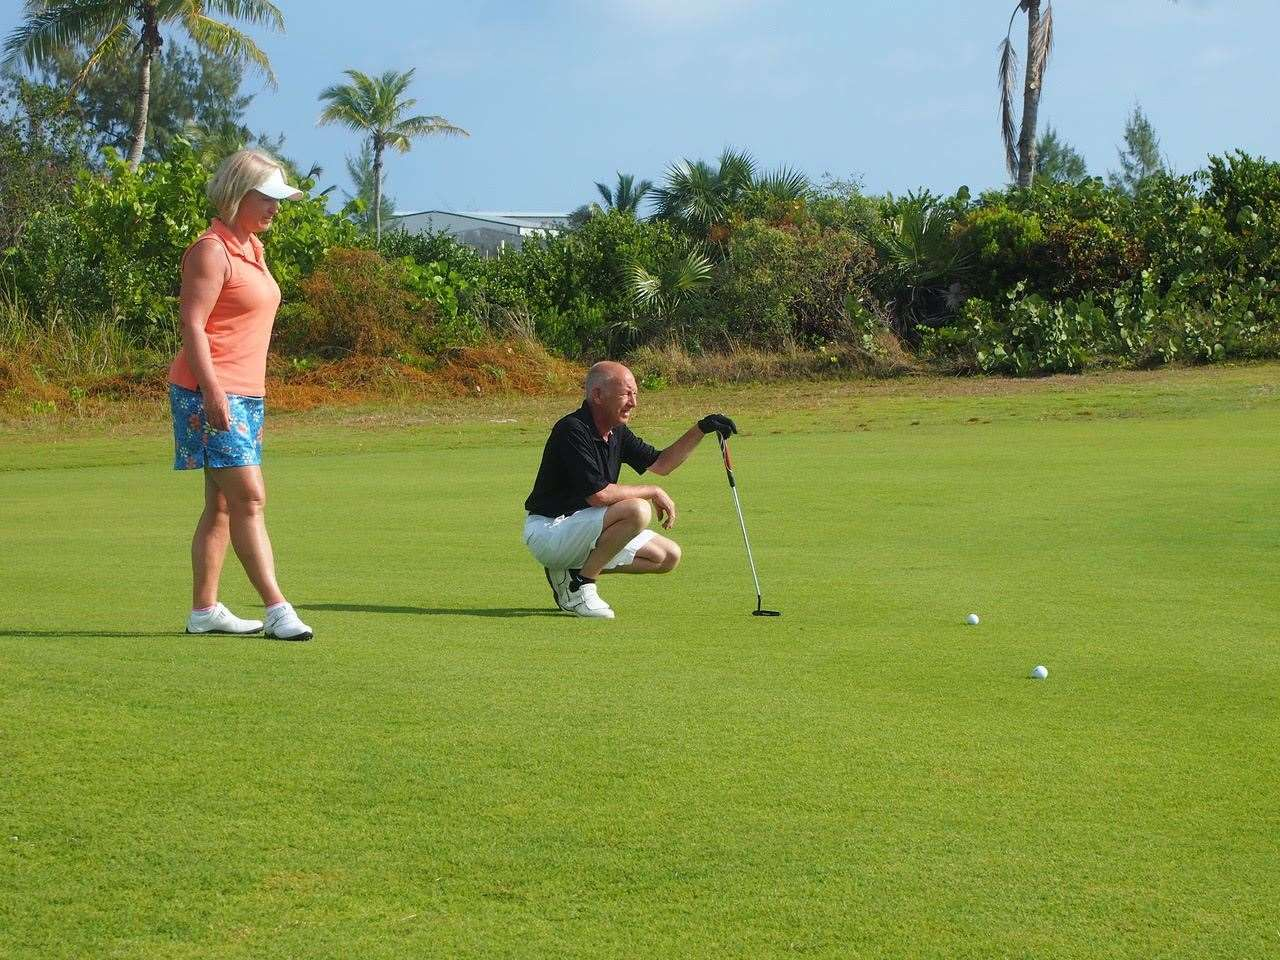 Allan and Sharon Jordan getting some putting practice in on a golf course